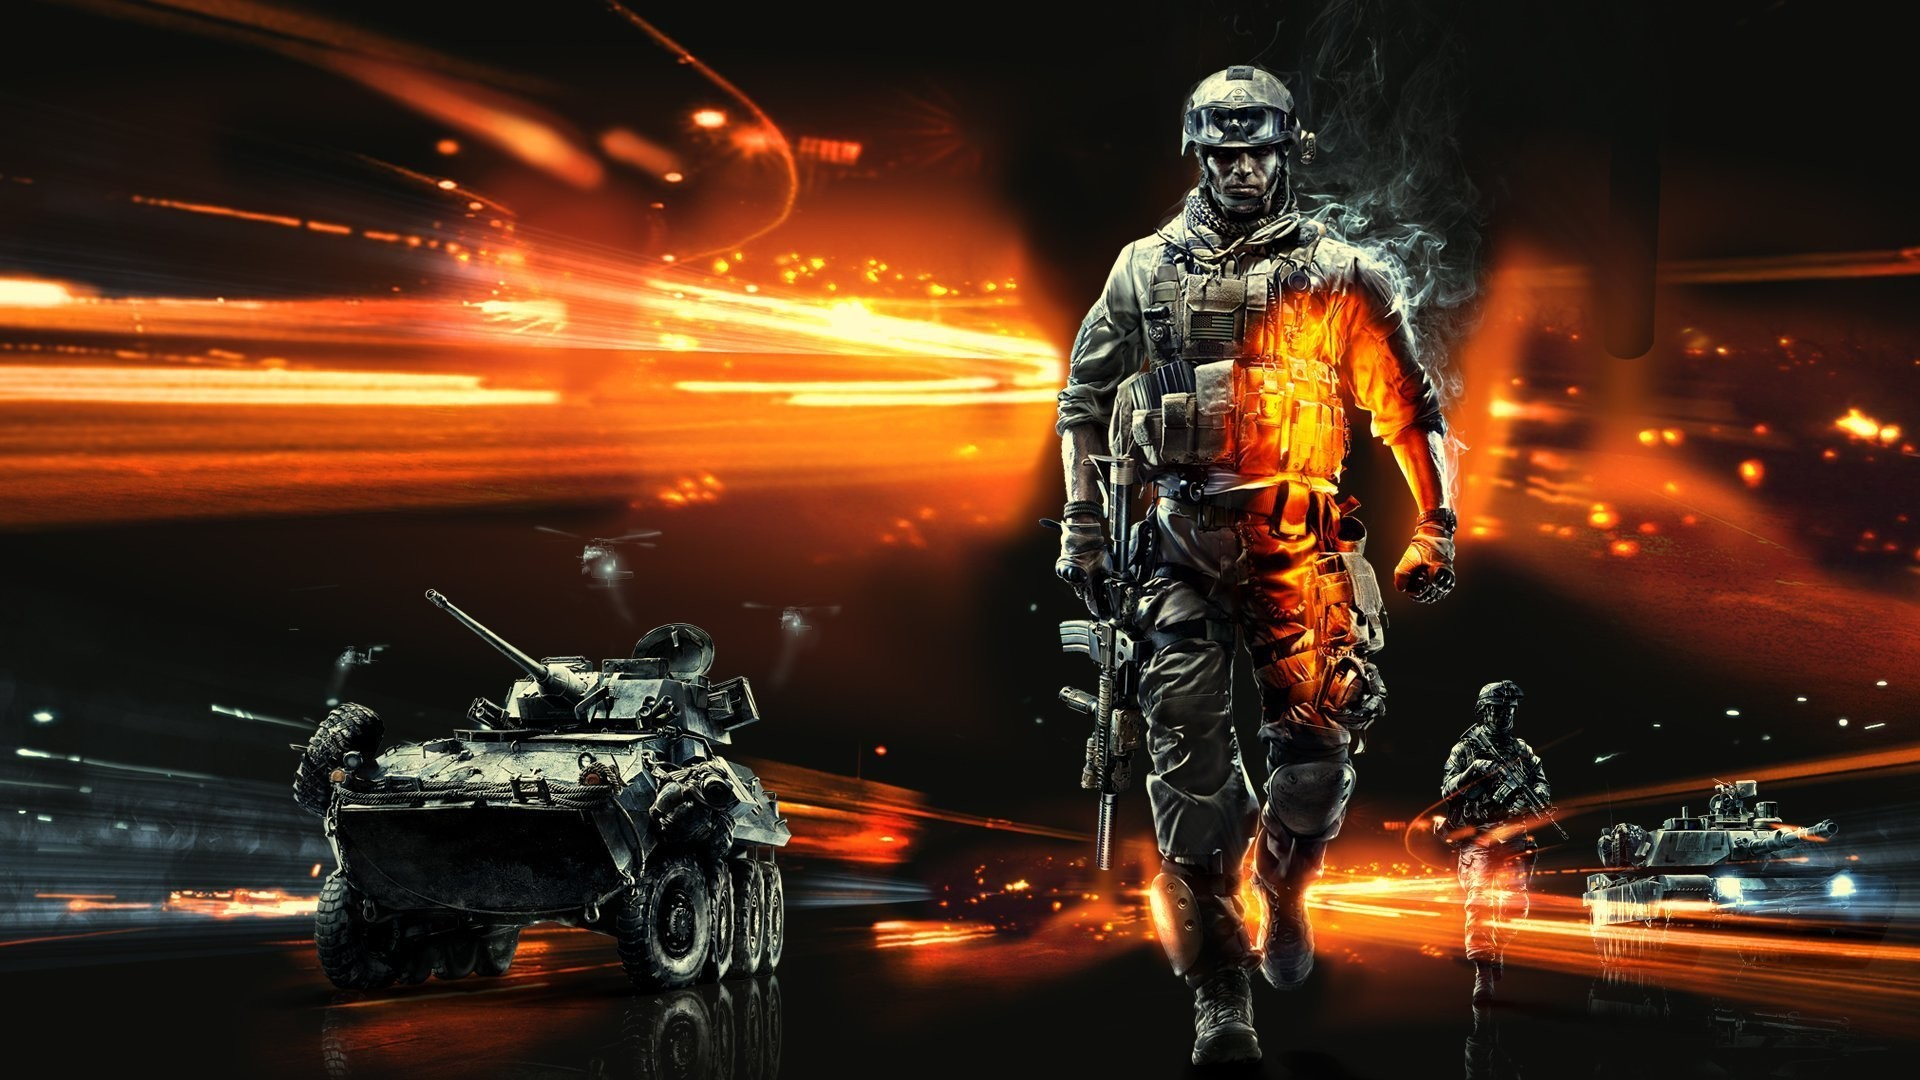 1920x1080 191 Battlefield 3 HD Wallpapers | Backgrounds - Wallpaper Abyss - Page 7